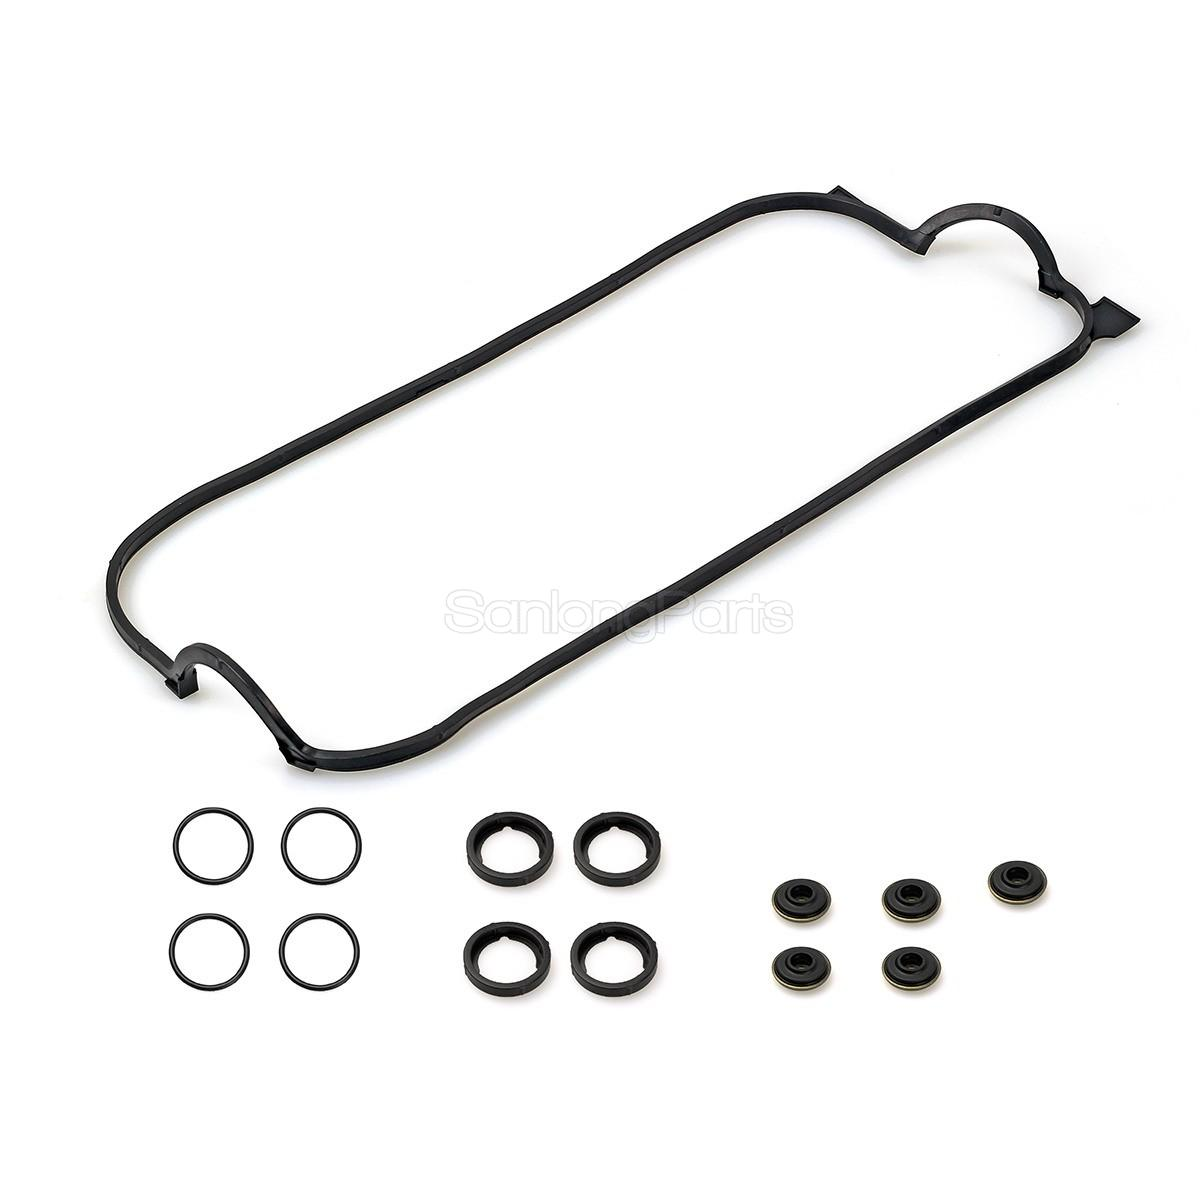 Valve Cover Gasket Fits Honda Accord Prelude Odyssey F22A1